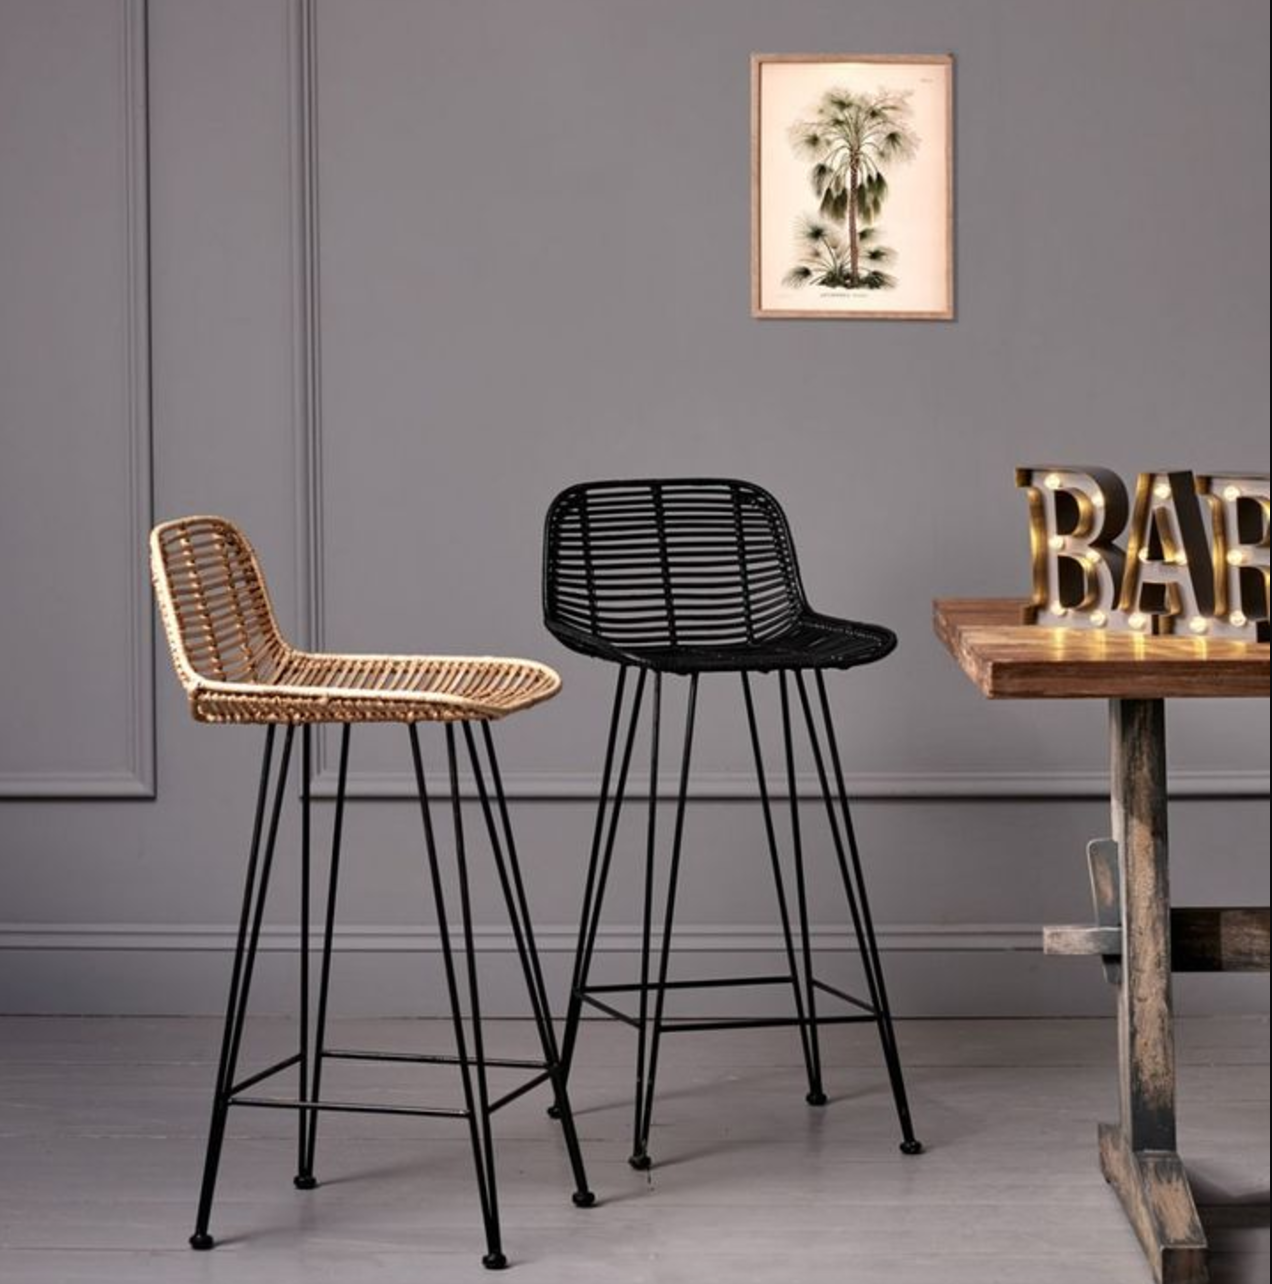 Rattan bar stool from graham and green 10 best barstools mad about the house